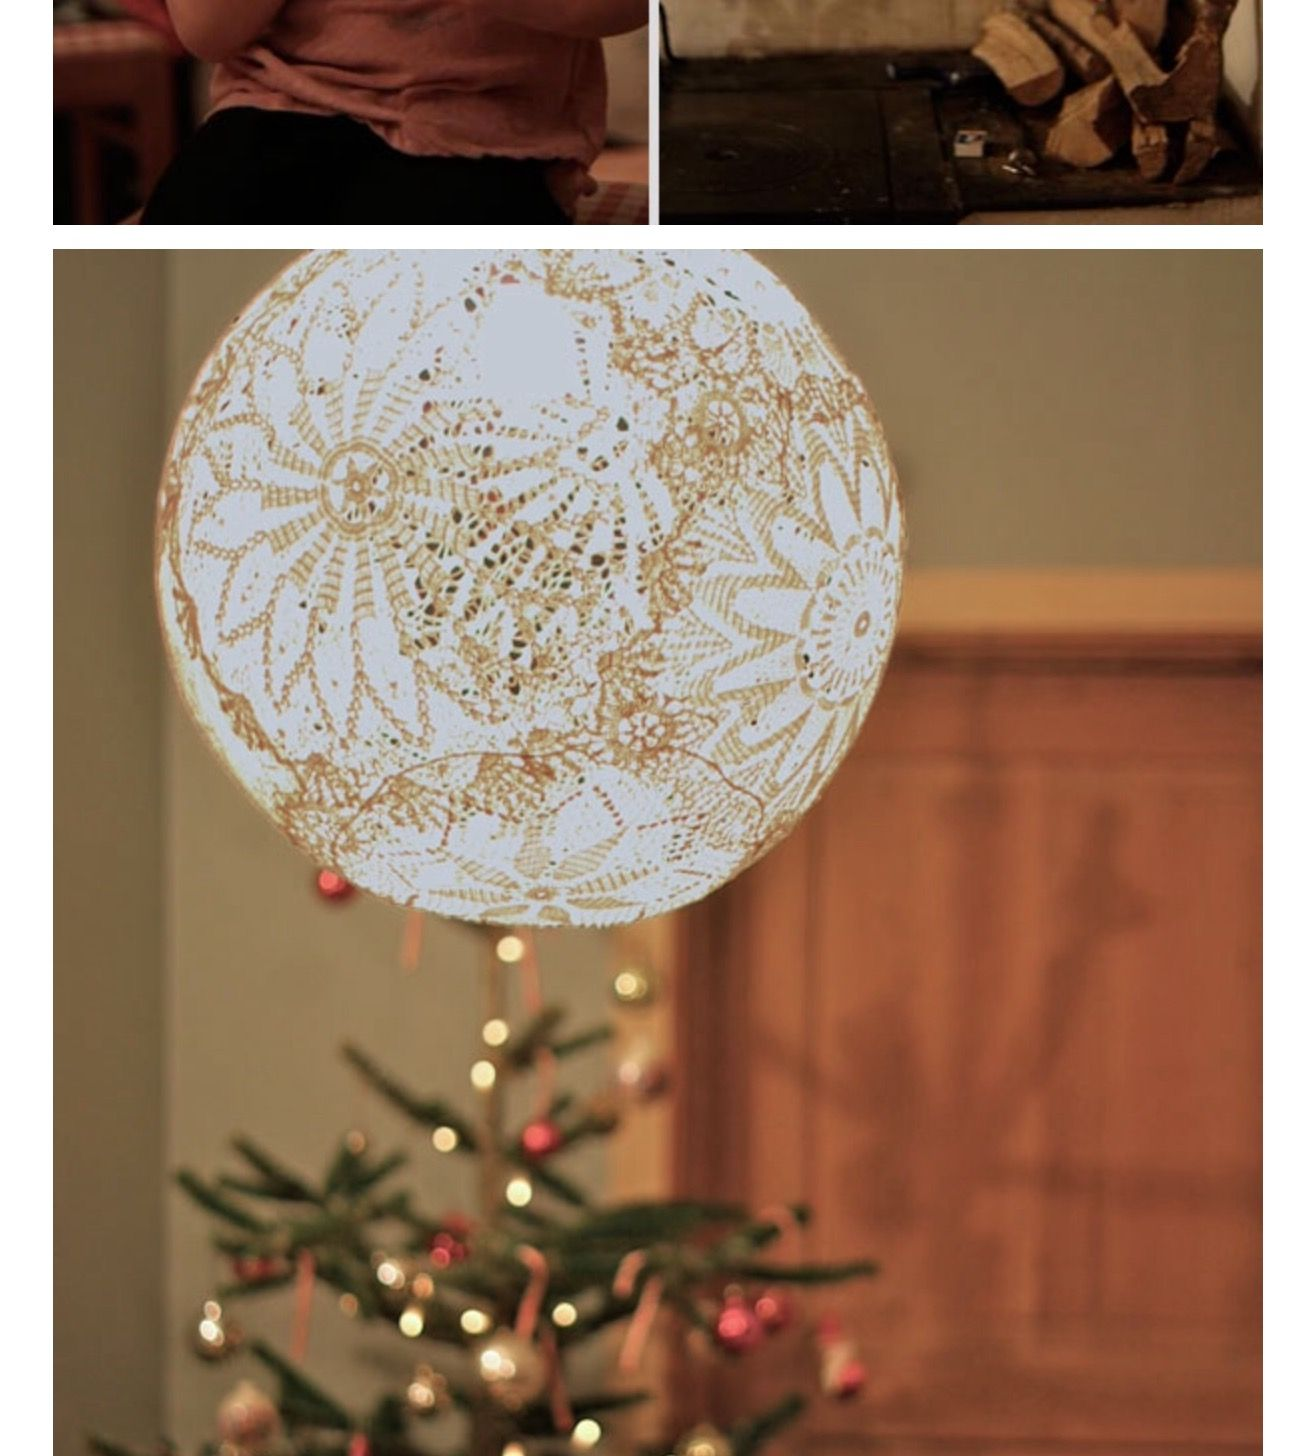 Pin by starlight on diy pinterest explore lace balloons balloon lights and more arubaitofo Images